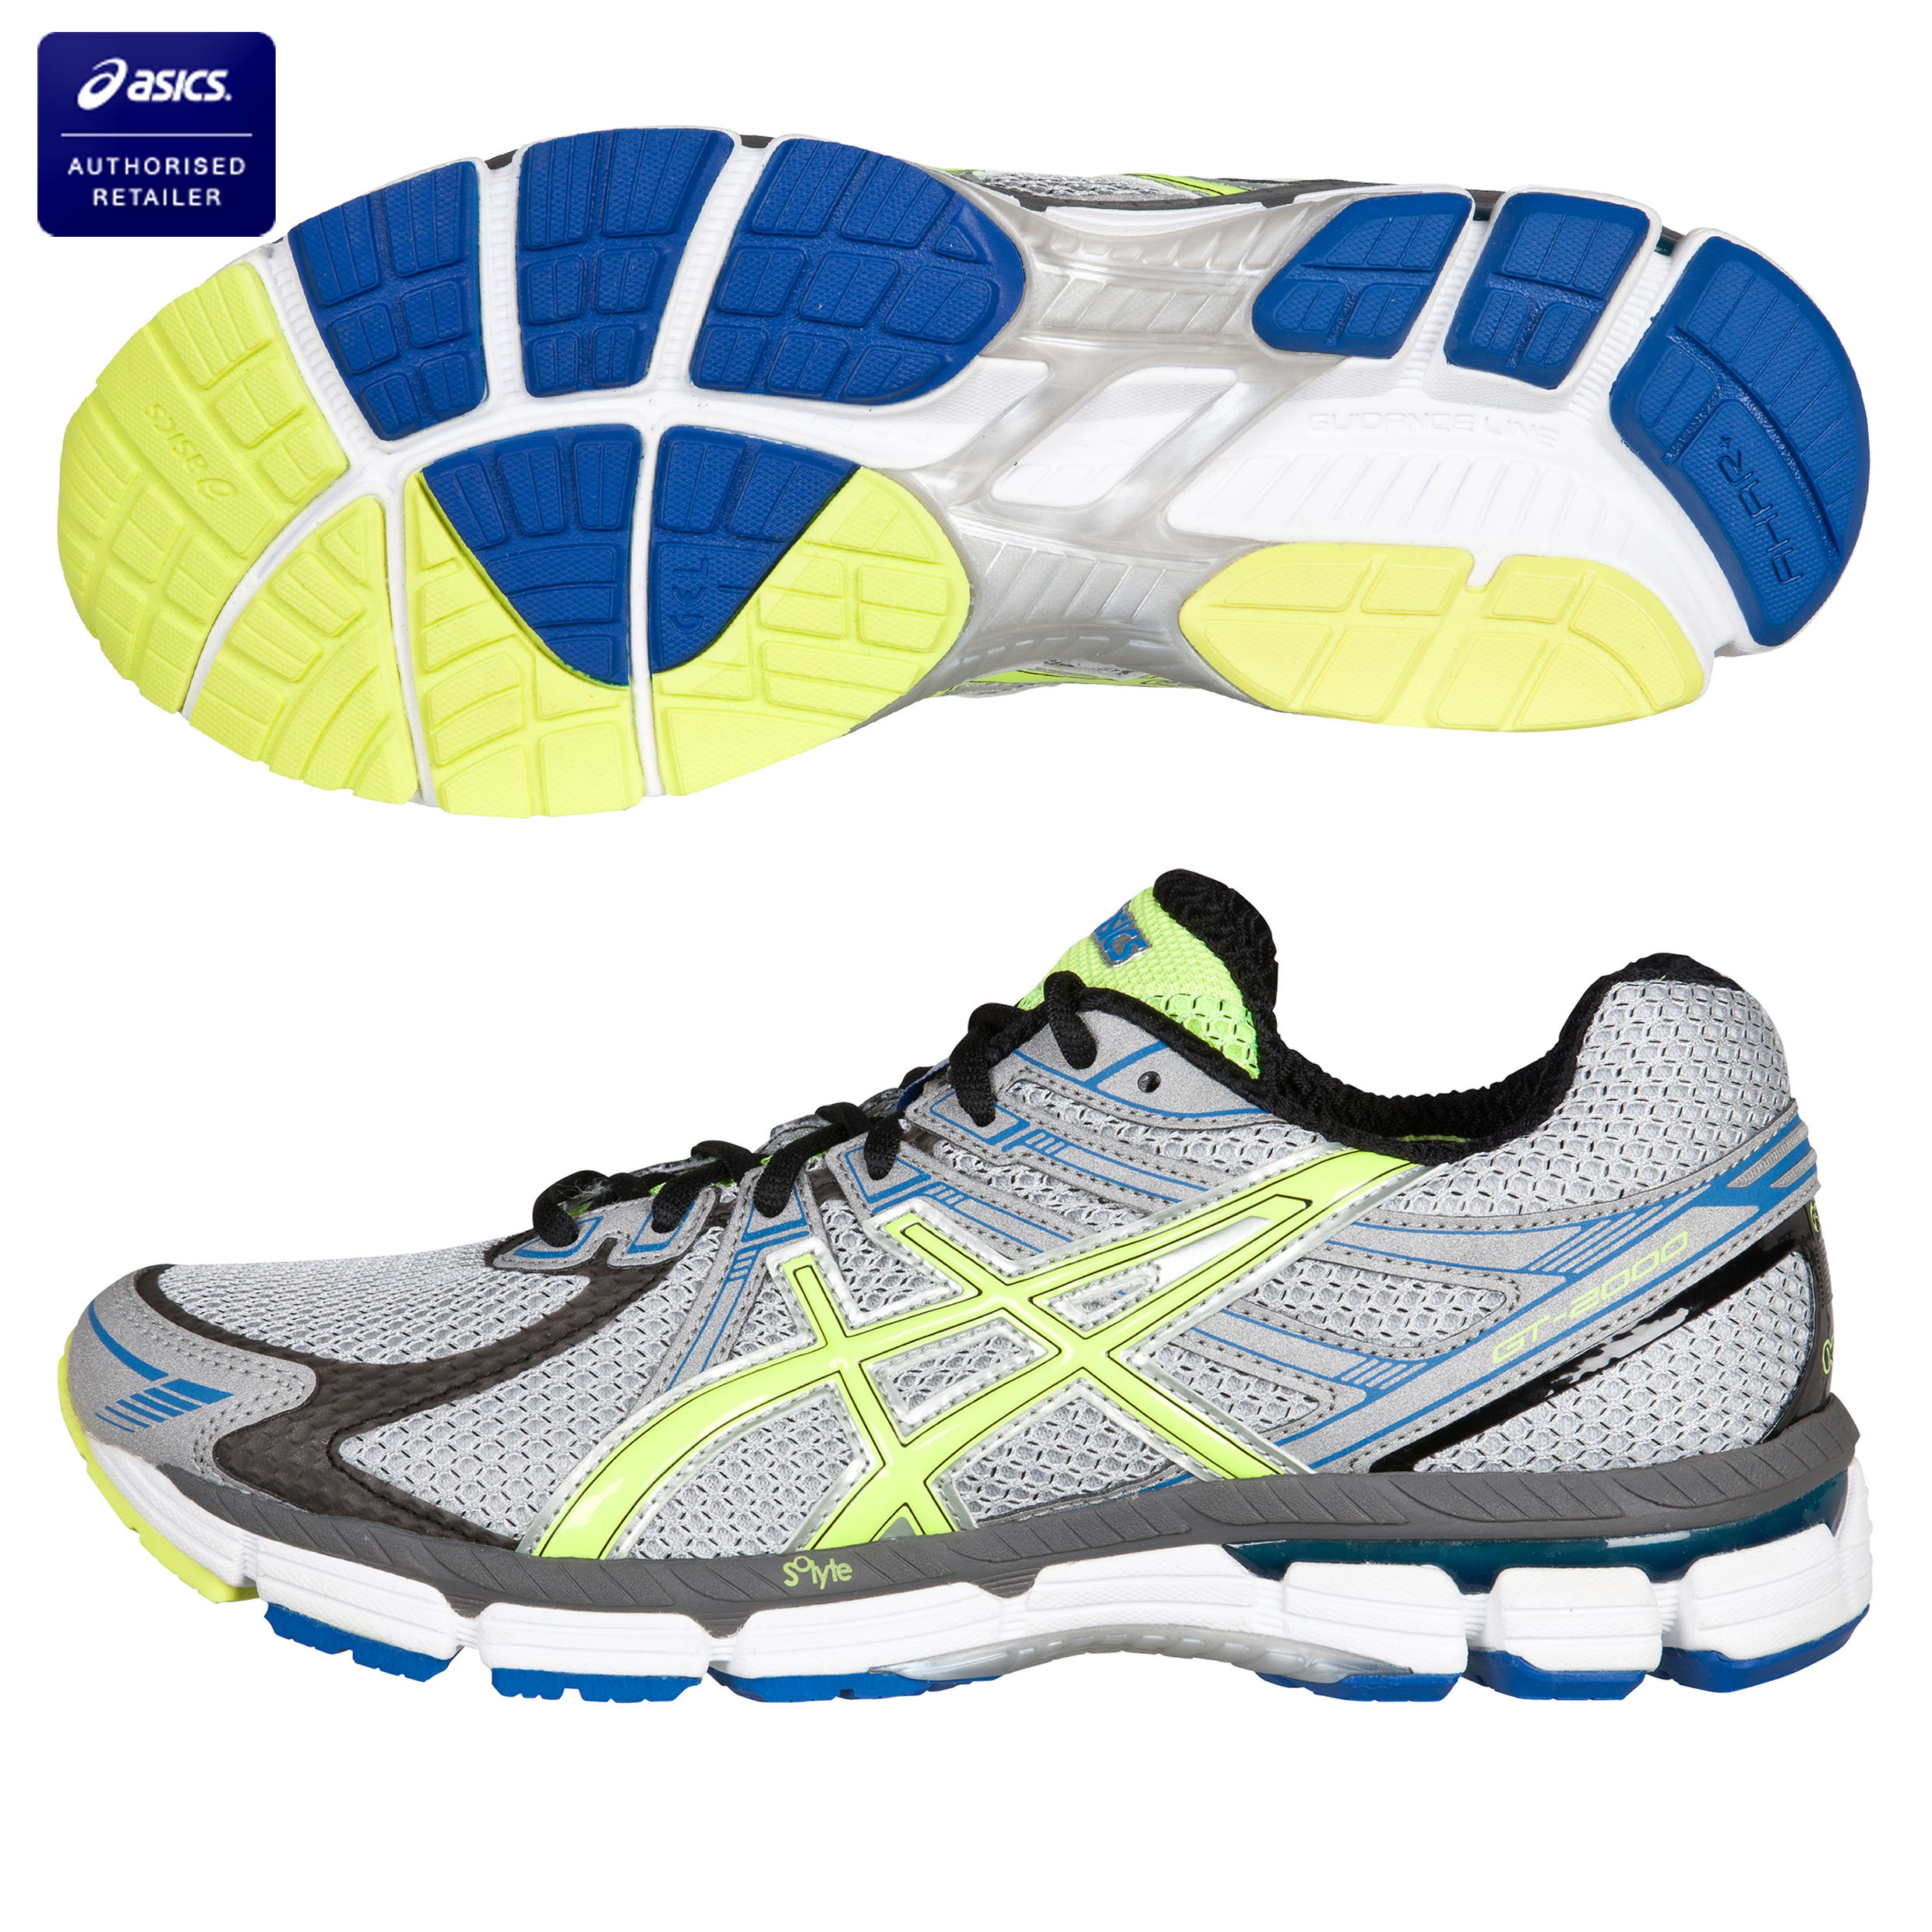 Asics GT 2000 Stability Running Trainers - Silver/Neon Yellow/Blue